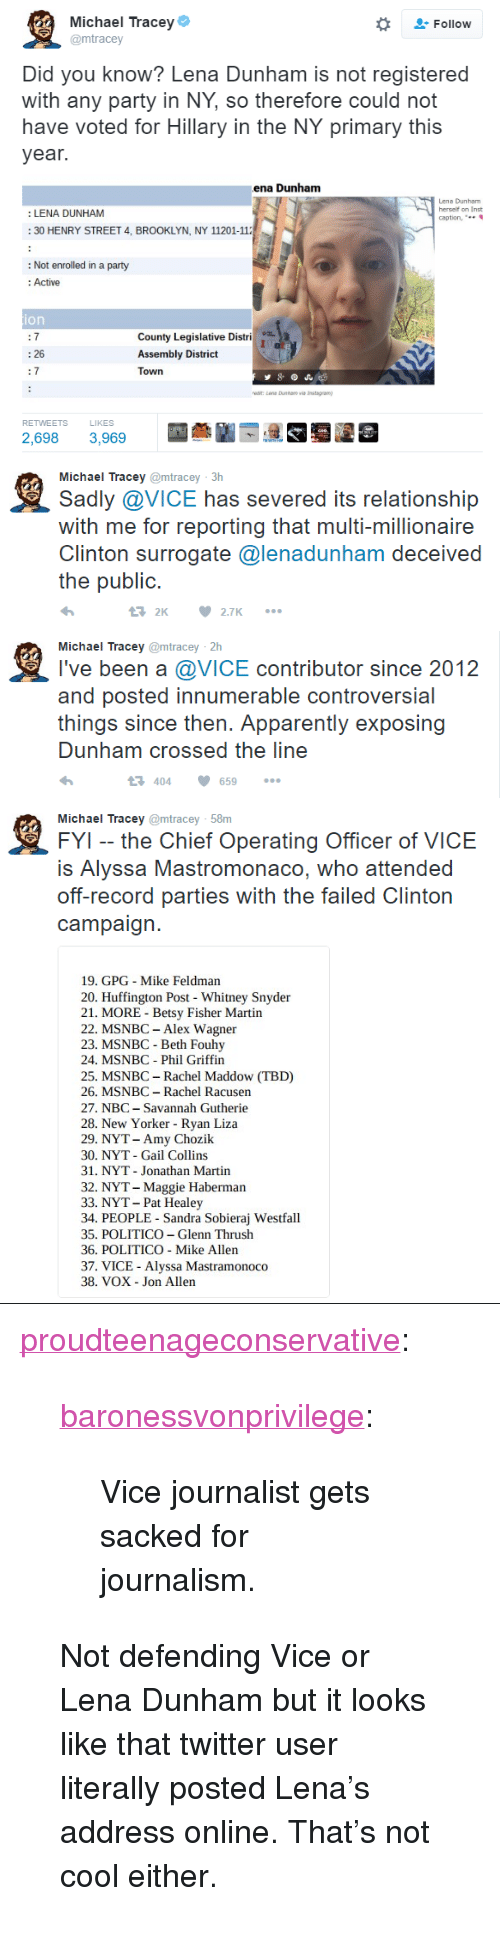 """Apparently, Martin, and Party: Michael Tracey  @mtracey  Follow  Did you know? Lena Dunham is not registered  with any party in NY, so therefore could not  have voted for Hillary in the NY primary this  year.  ena Dunham  Lena Dunham  herself on Inst  caption, """"  : LENA DUNHAM  30 HENRY STREET 4, BROOKLYN, NY 11201-11  : Not enrolled in a party  : Active  ion  County Legislative Distri  Assembly District  Town  : 26  7  RETWEETS  LIKES  2,698 3,969   Michael Tracey @mtracey 3h  Sadly @VICE has severed its relationship  with me for reporting that multi-millionaire  Clinton surTogatc @lenadunham deceived  the public.  2 2.7   鬼  Michael Tracey @mtracey 2h  I've been a @VICE contributor since 2012  and posted innumerable controversial  things since then. Apparently exposing  Dunham crossed the line  404659   Michael Tracey @mtracey 58m  FYI -- the Chief Operating Officer of VICE  IS Alyssa Mastromonaco, who attended  oft-record parties with the talled Clinton  campaign.  19. GPG Mike Feldman  20. Huffington Post Whitney Snyder  21. MORE - Betsy Fisher Martin  22. MSNBC - Alex Wagner  23. MSNBC - Beth Fouhy  24. MSNBC Phil Griffin  25. MSNBC- Rachel Maddow (TBD)  26. MSNBC Rachel Racusen  27. NBC -Savannah Gutherie  28. New Yorker - Ryan Liza  29. NYT- Amy Chozik  30. NYT - Gail Collins  31. NYT Jonathan Martin  32. NYT- Maggie Haberman  33. NYT- Pat Healey  34. PEOPLE Sandra Sobieraj Westfall  35. POLITICO -Glenn Thrush  36. POLITICO - Mike Allen  37. VICE Alyssa Mastramonoco  38. VOX Jon Allen <p><a href=""""http://proudteenageconservative.tumblr.com/post/153064366164/baronessvonprivilege-vice-journalist-gets-sacked"""" class=""""tumblr_blog"""">proudteenageconservative</a>:</p>  <blockquote><p><a class=""""tumblr_blog"""" href=""""http://baronessvonprivilege.tumblr.com/post/153050254749"""">baronessvonprivilege</a>:</p><blockquote> <p>Vice journalist gets sacked for journalism.</p> </blockquote>  <p>Not defending Vice or Lena Dunham but it looks like that twitter user literally posted Lena'"""